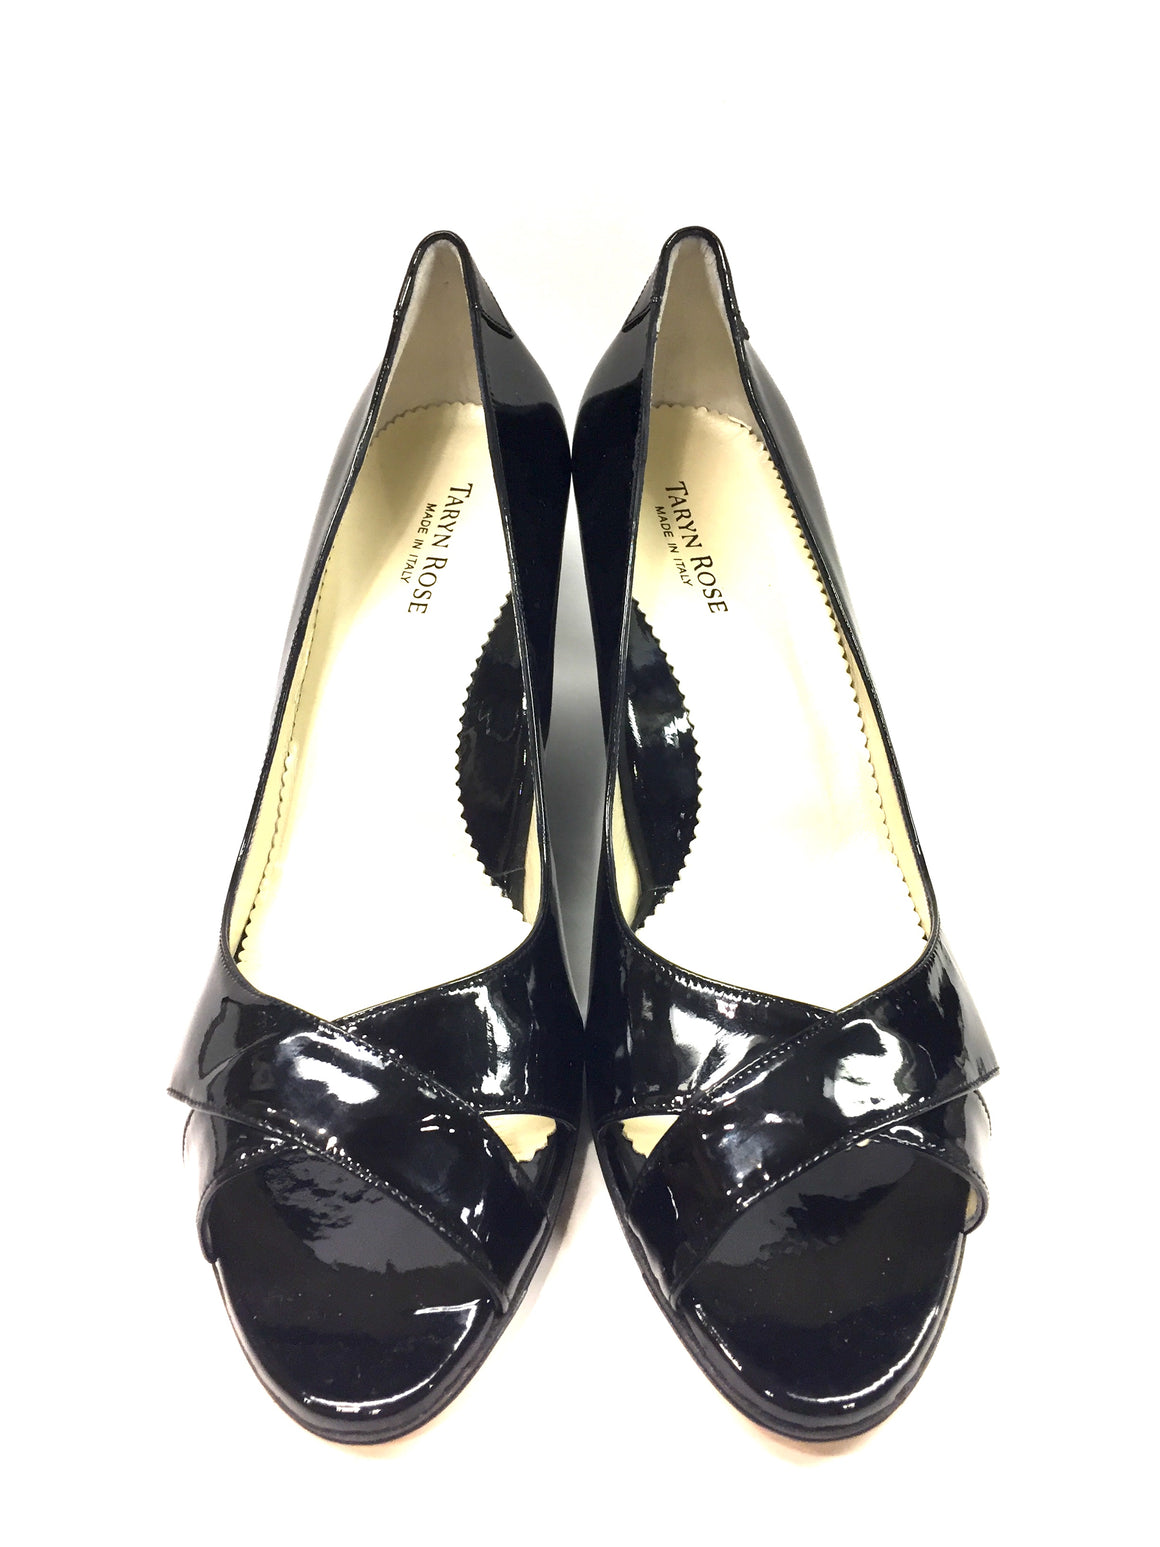 New TARYN ROSE Black Patent Leather Open-Toe Wedge Heel Pumps Sz42